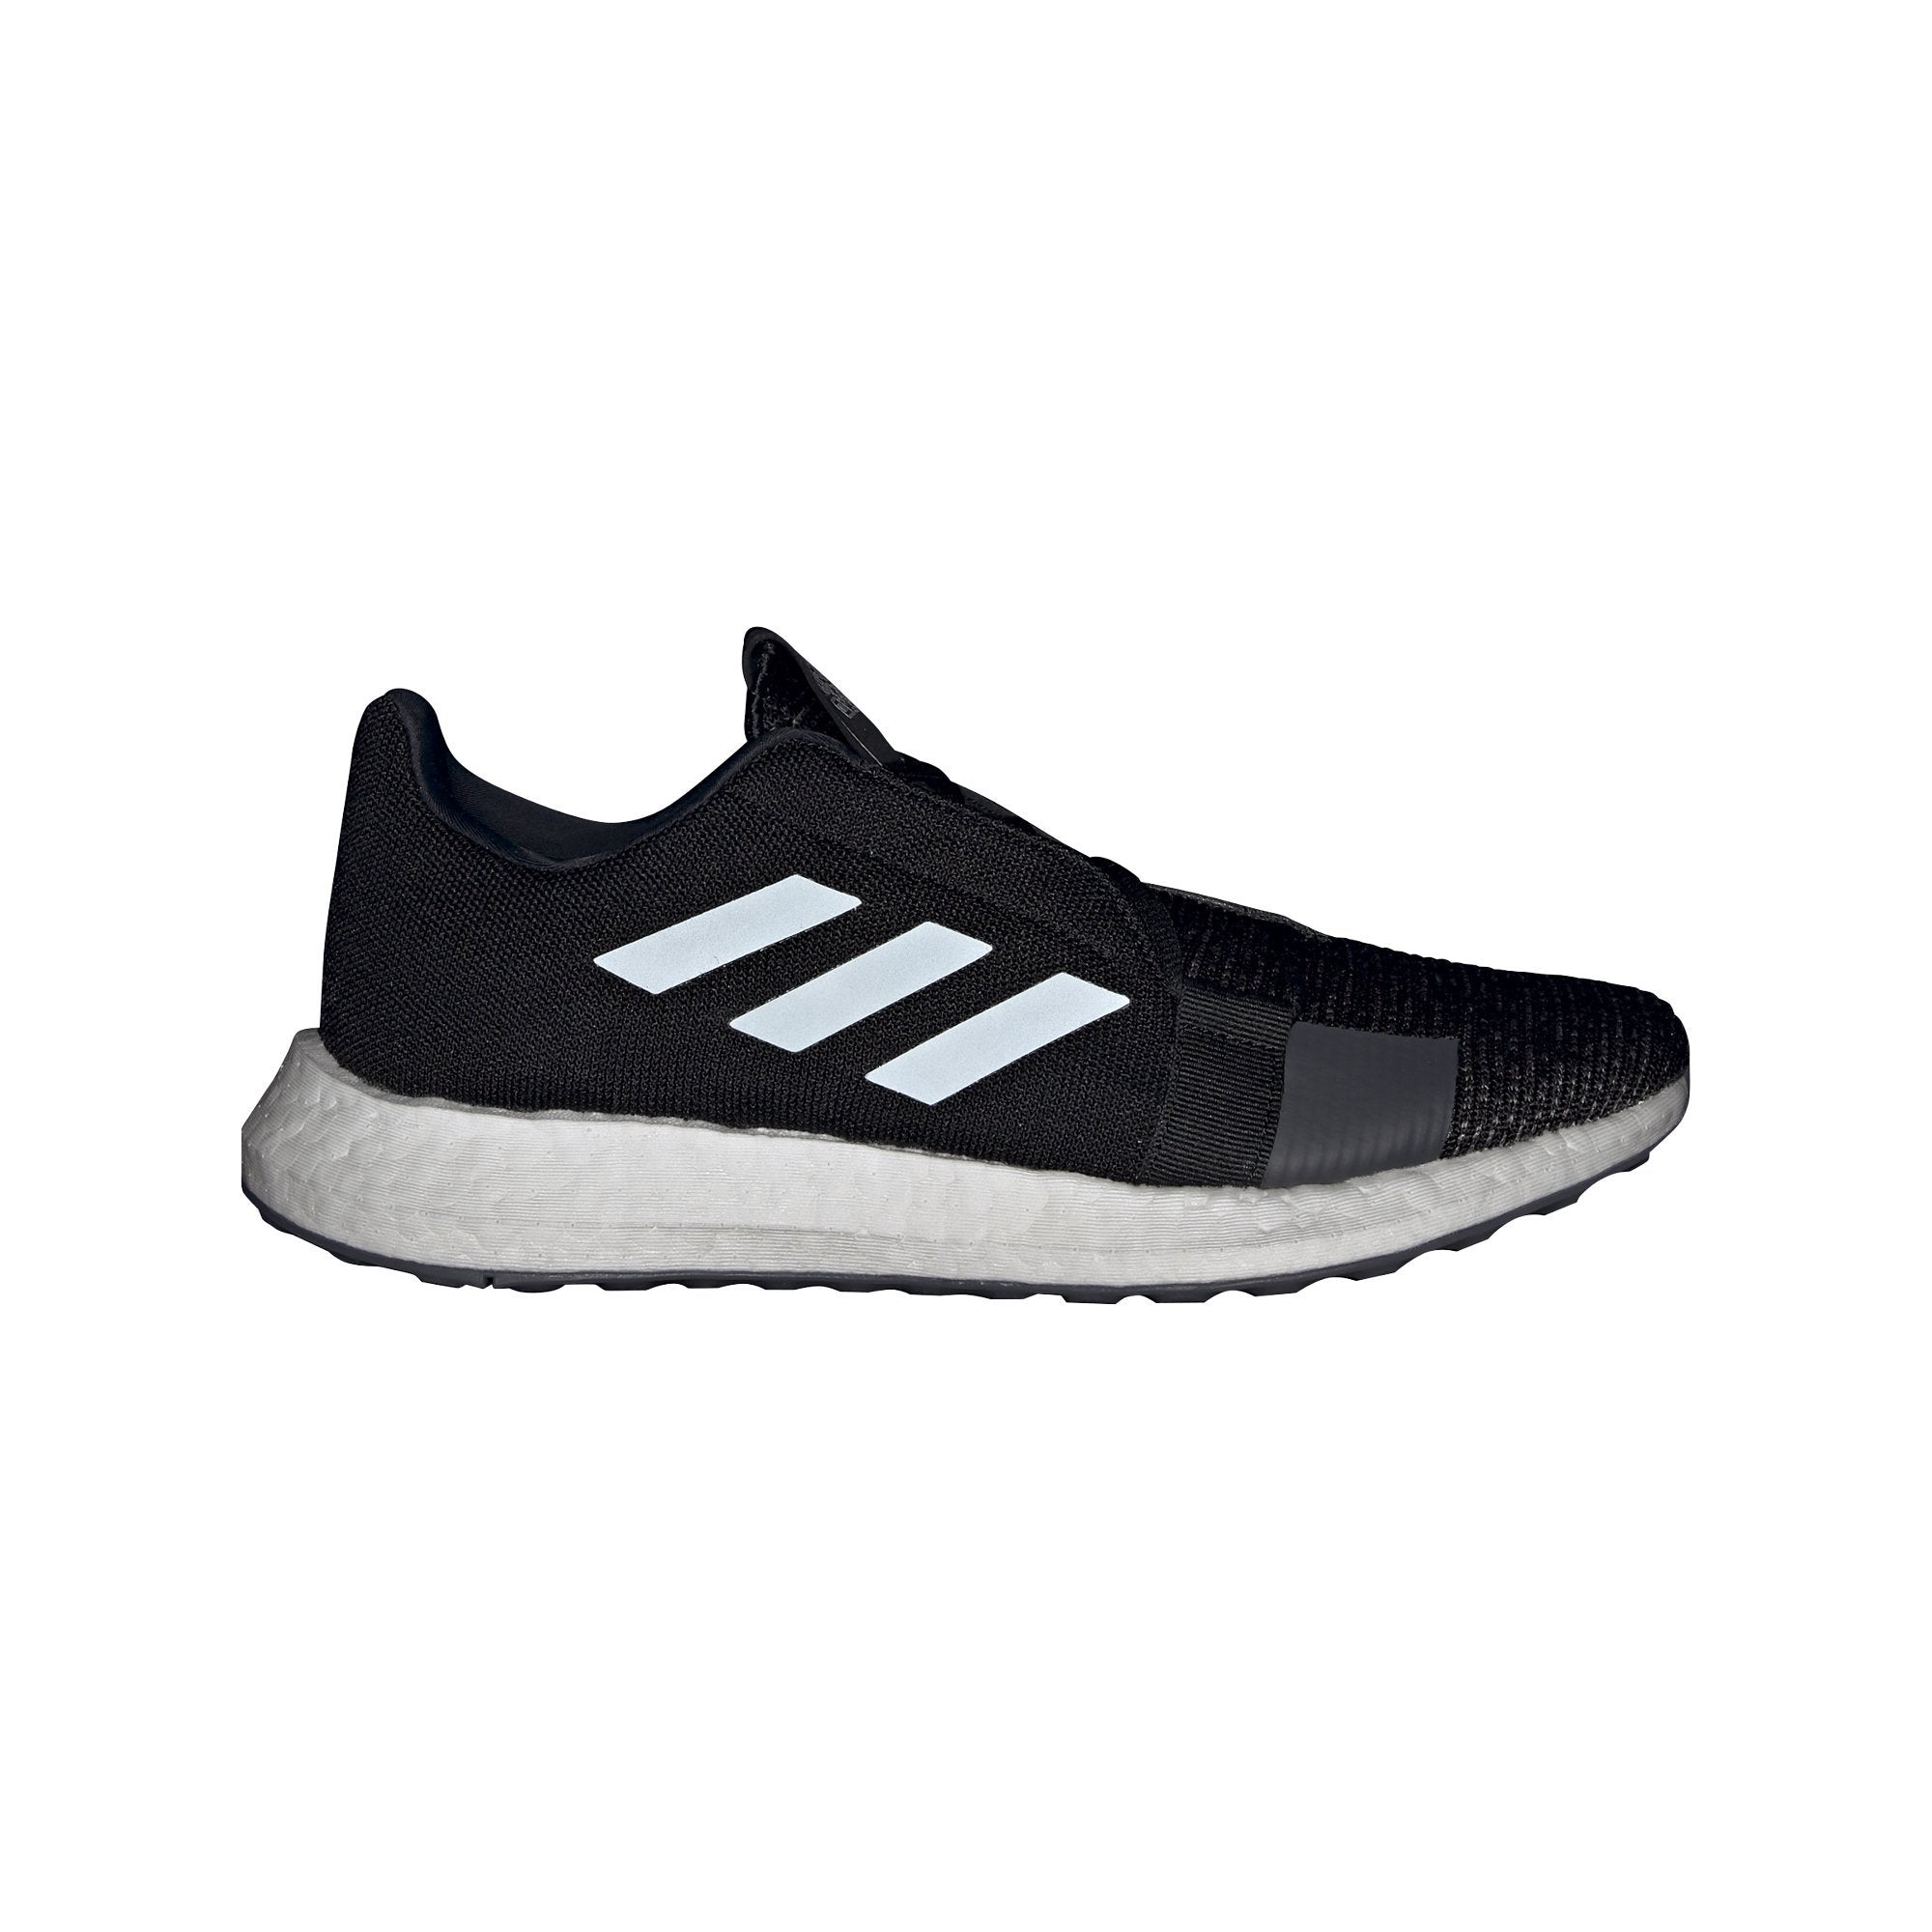 Adidas Men's Senseboost GO Shoes - Core Black/Grey Six/Grey Three SP-Footwear-Mens Adidas